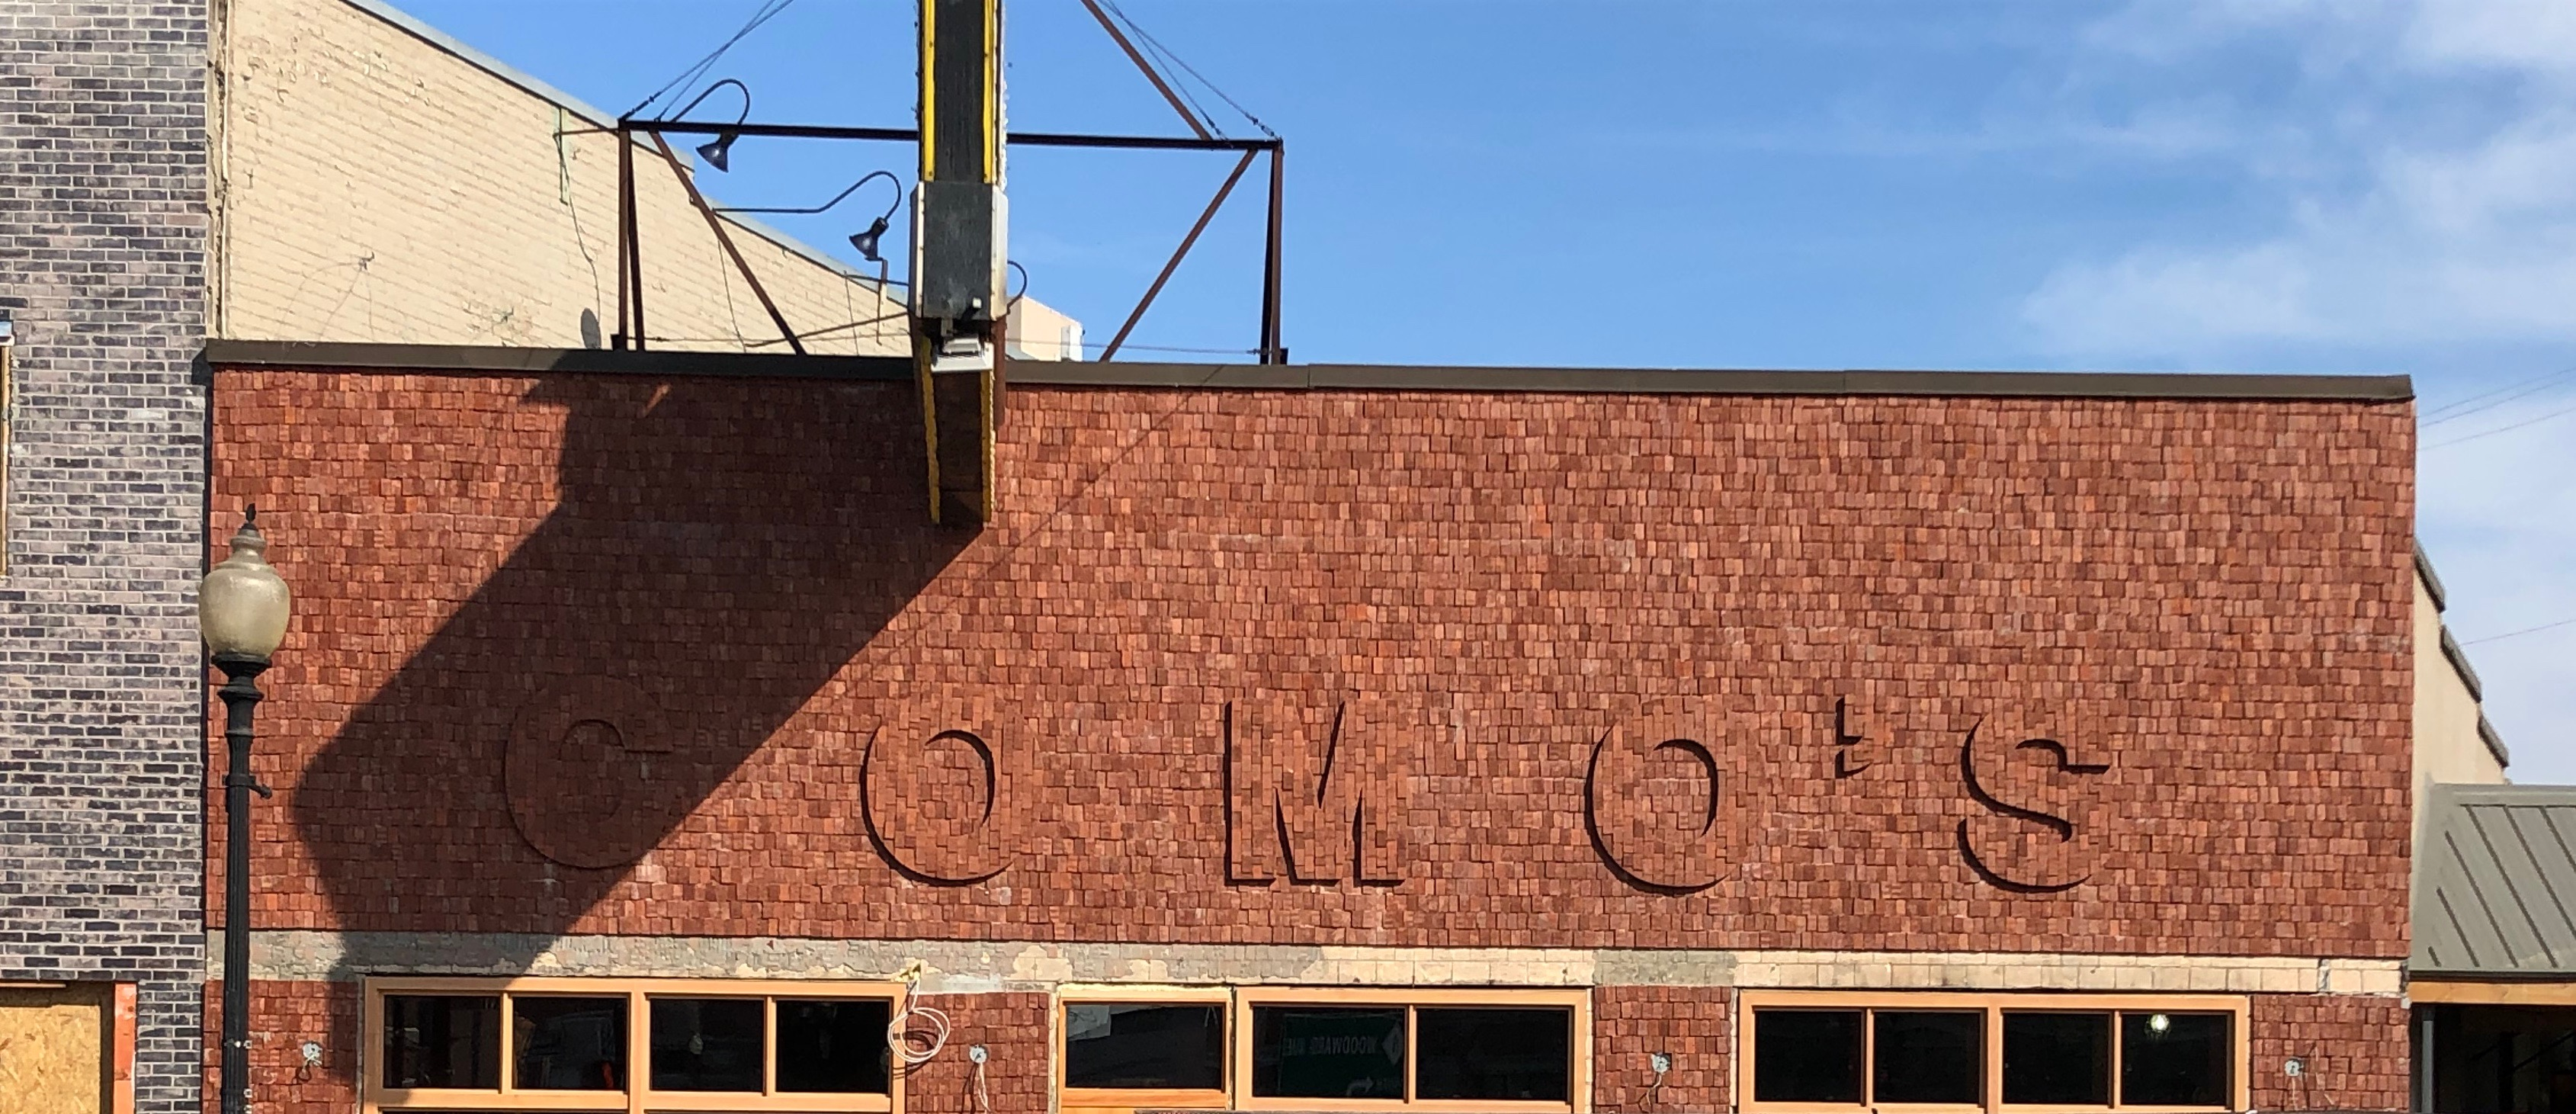 Como's Comes Back to Life With Detroit-Style Pizza in May